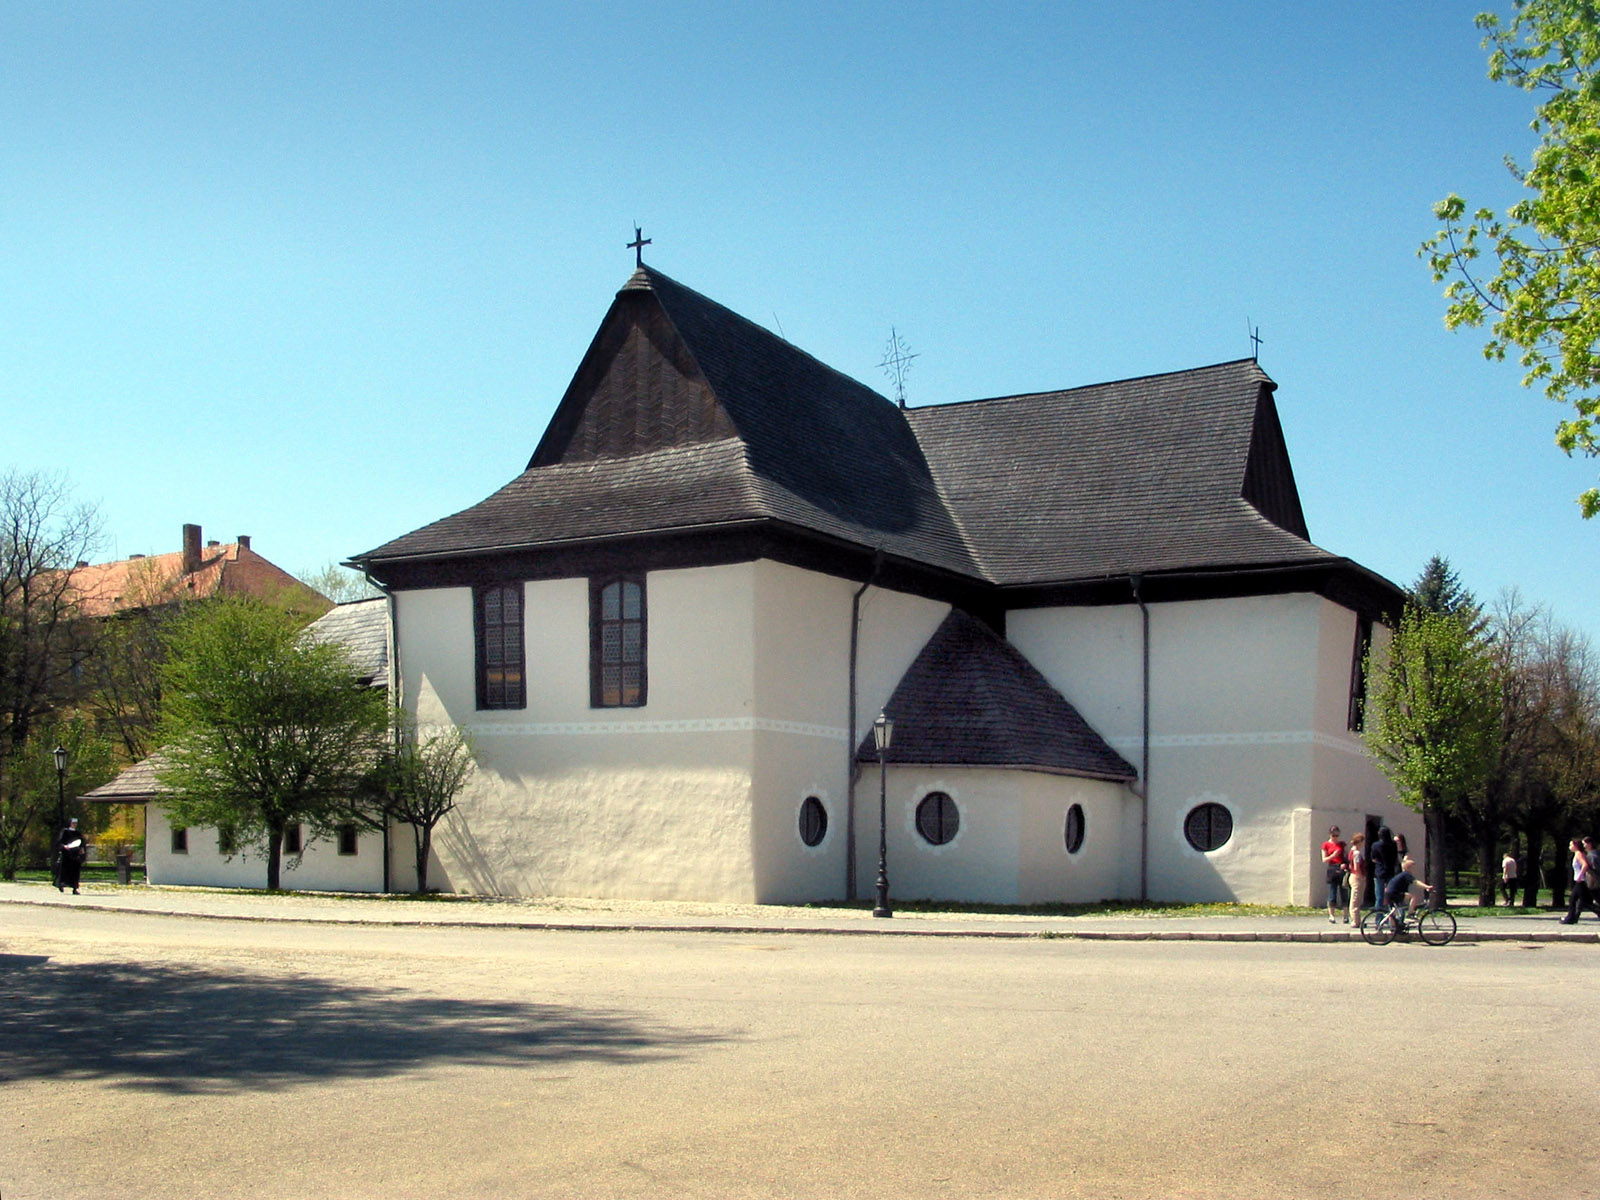 Evangelical 'Articled' Wooden Church at Kežmarok (Monuments Board of the SR Archive, photo by Peter Fratrič)